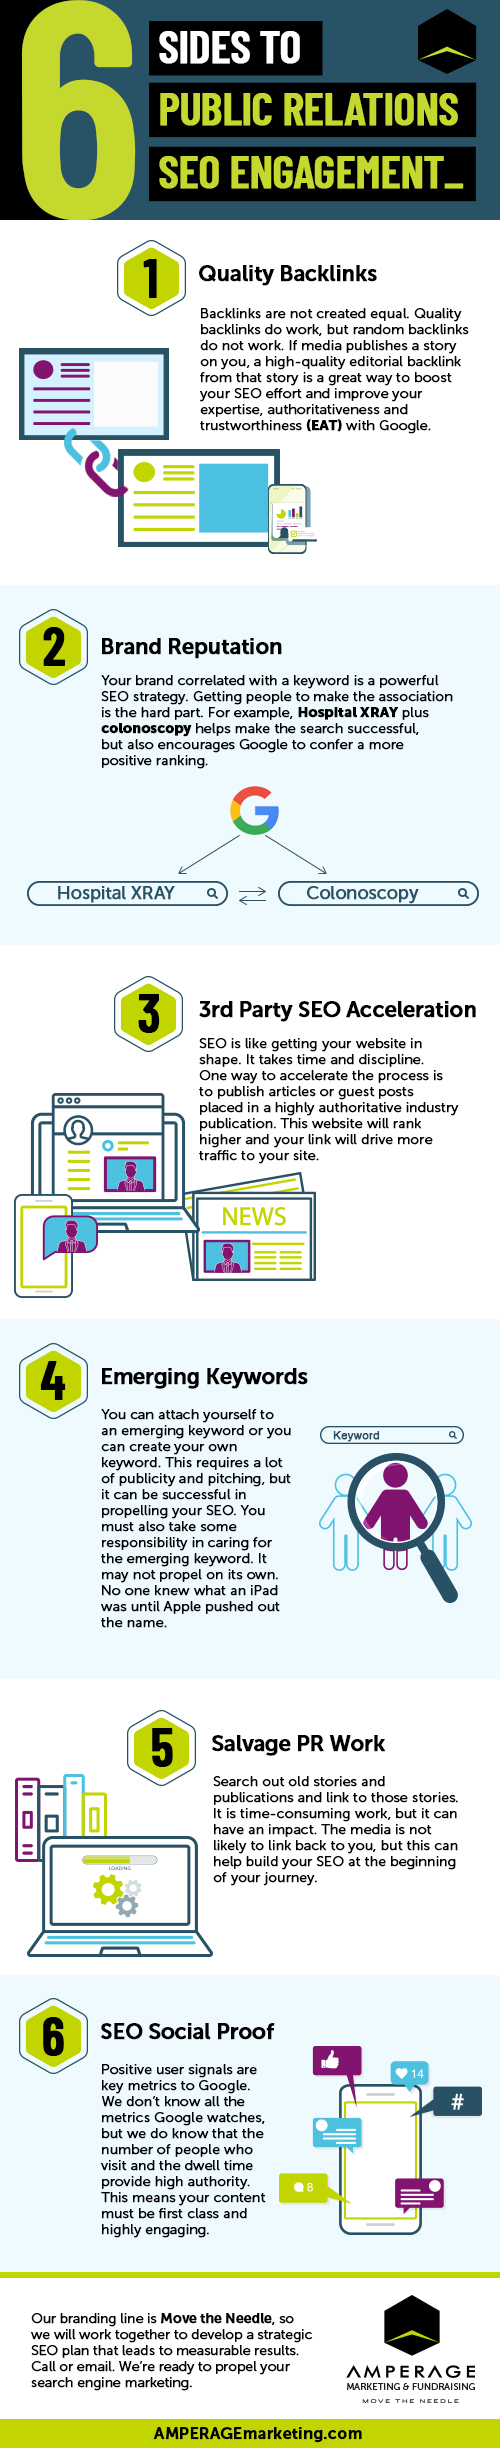 6 Sides to Public Relations SEO Engagement